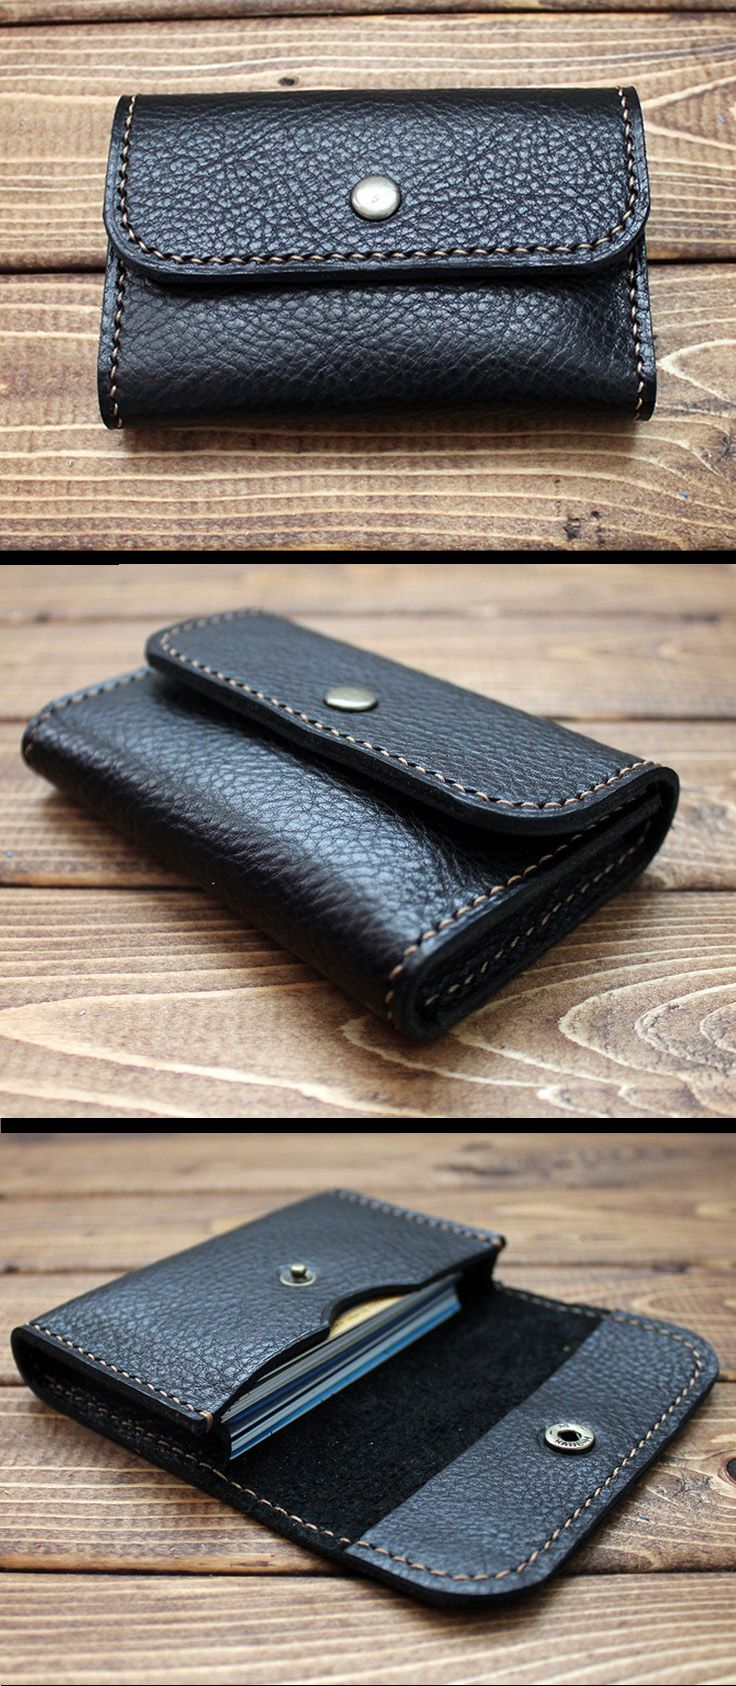 HAND STITCHED BUSINESS CARD CASE/ Wallet in ITALIAN VEGETABLE TANNED Leather- A Perfect Gift for Wedding, Business, Graduation, Birthday, Anniversary, men and women. It is made with Eco-friendly materials. - It is top quality Italian vegetable tanned leather that is Chromium-free and made with vegetable sources.  - Slightly oiled, soft and natural grain texture.